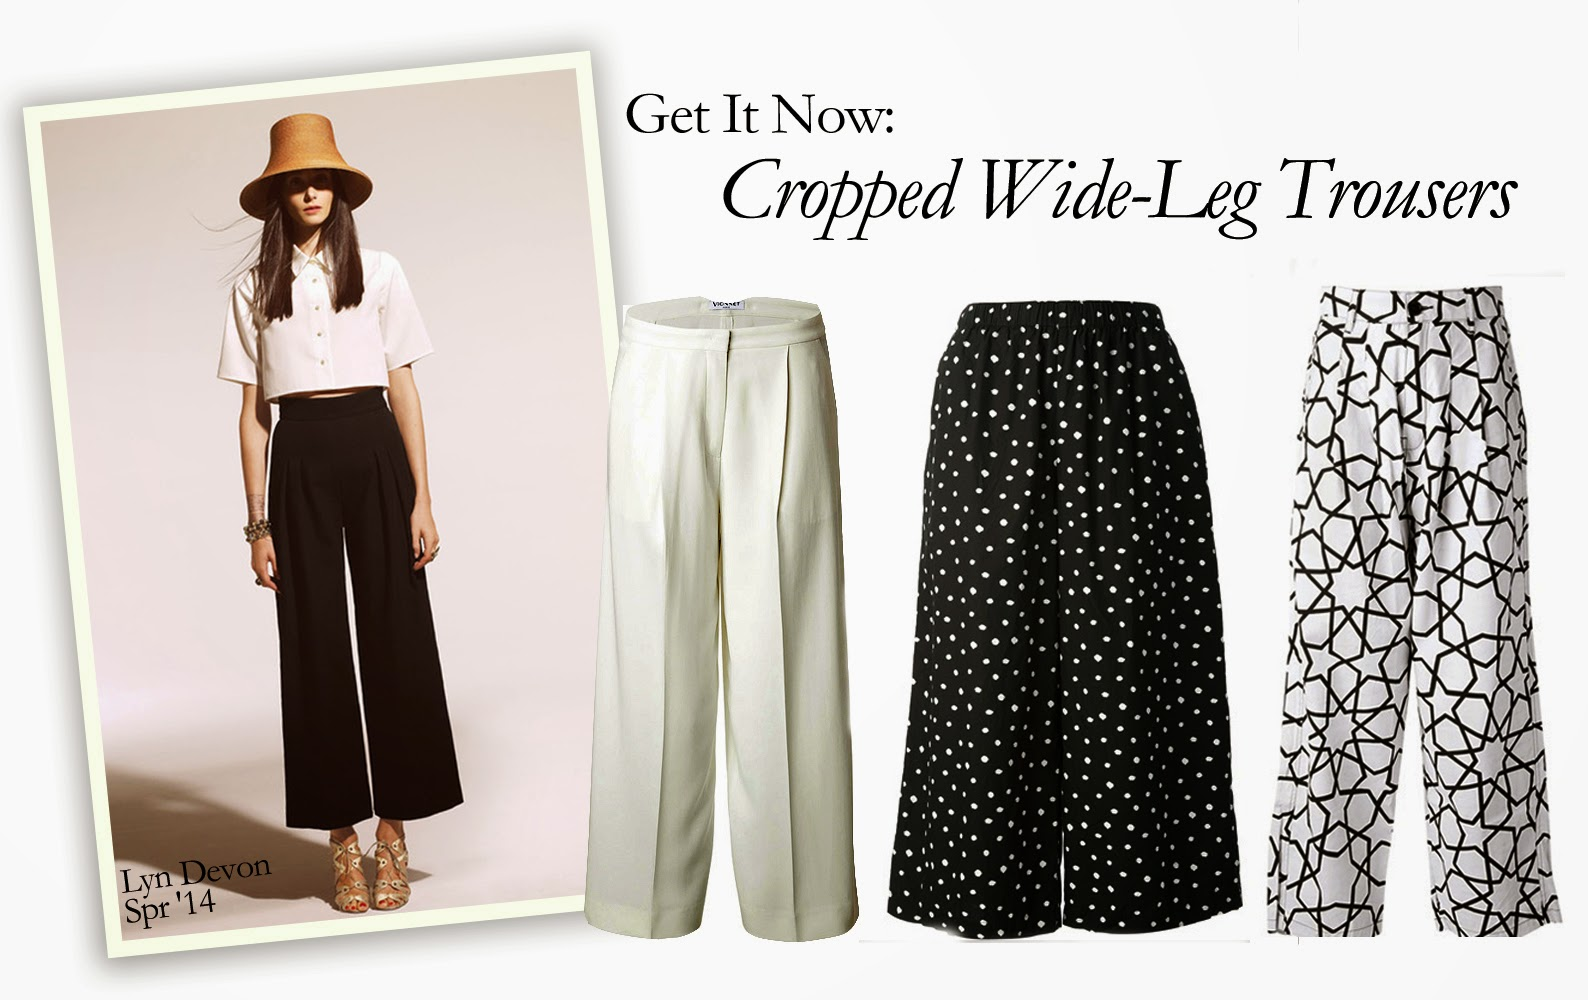 Get It Now: Cropped Wide-Leg Trousers